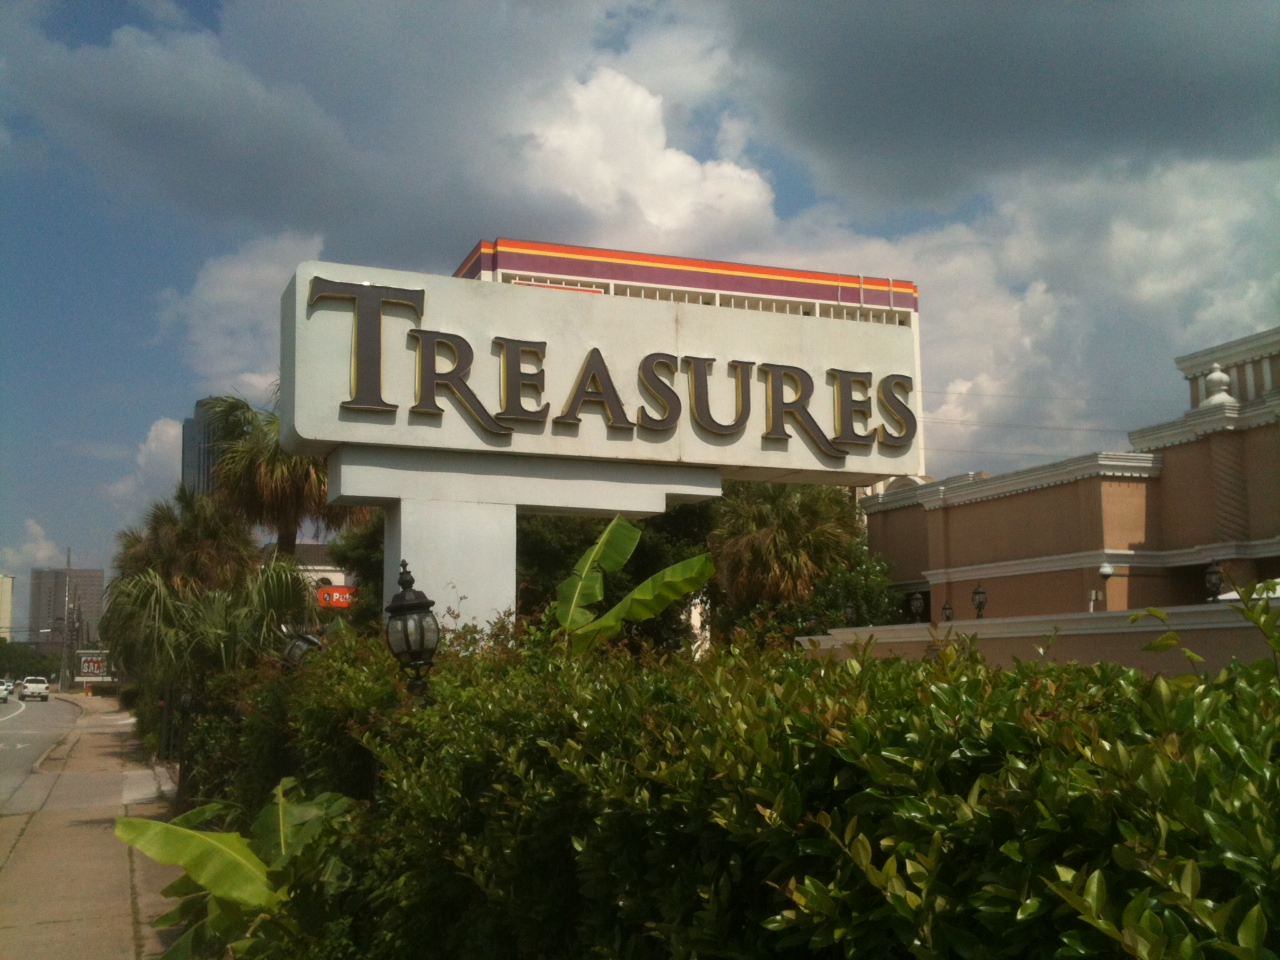 Recommend treasures strip club houston texas phrase